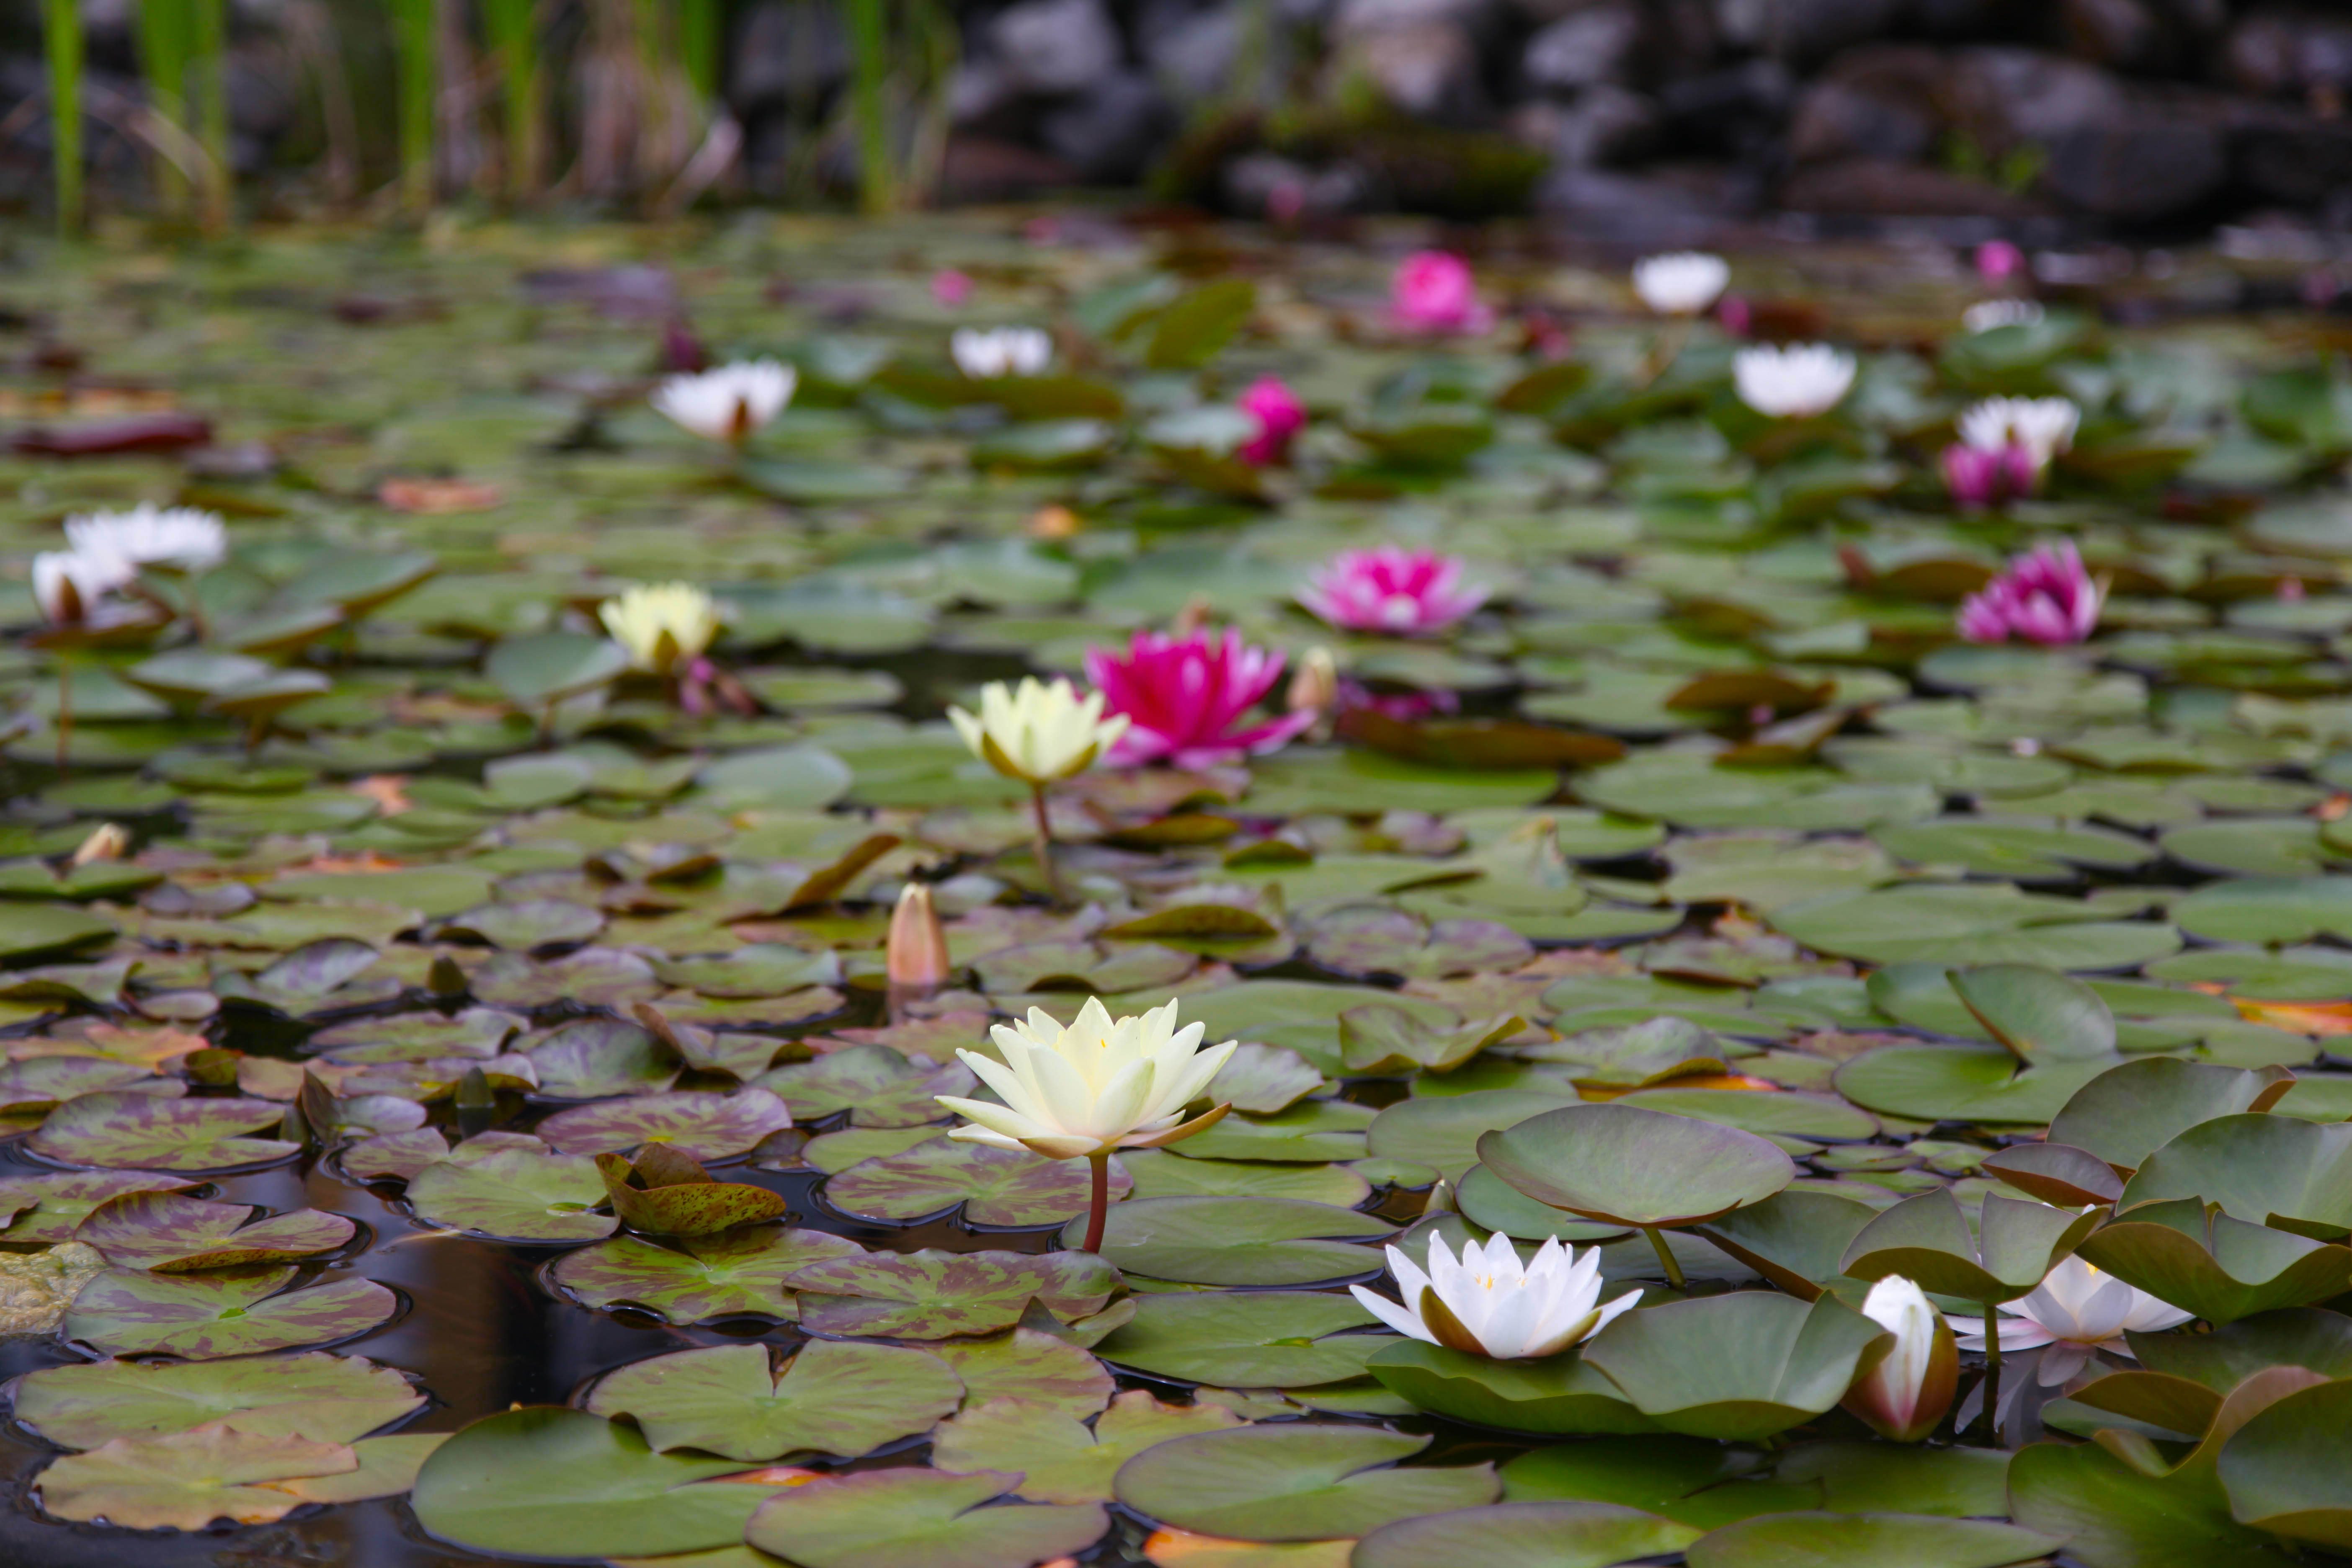 Flower lilly pads